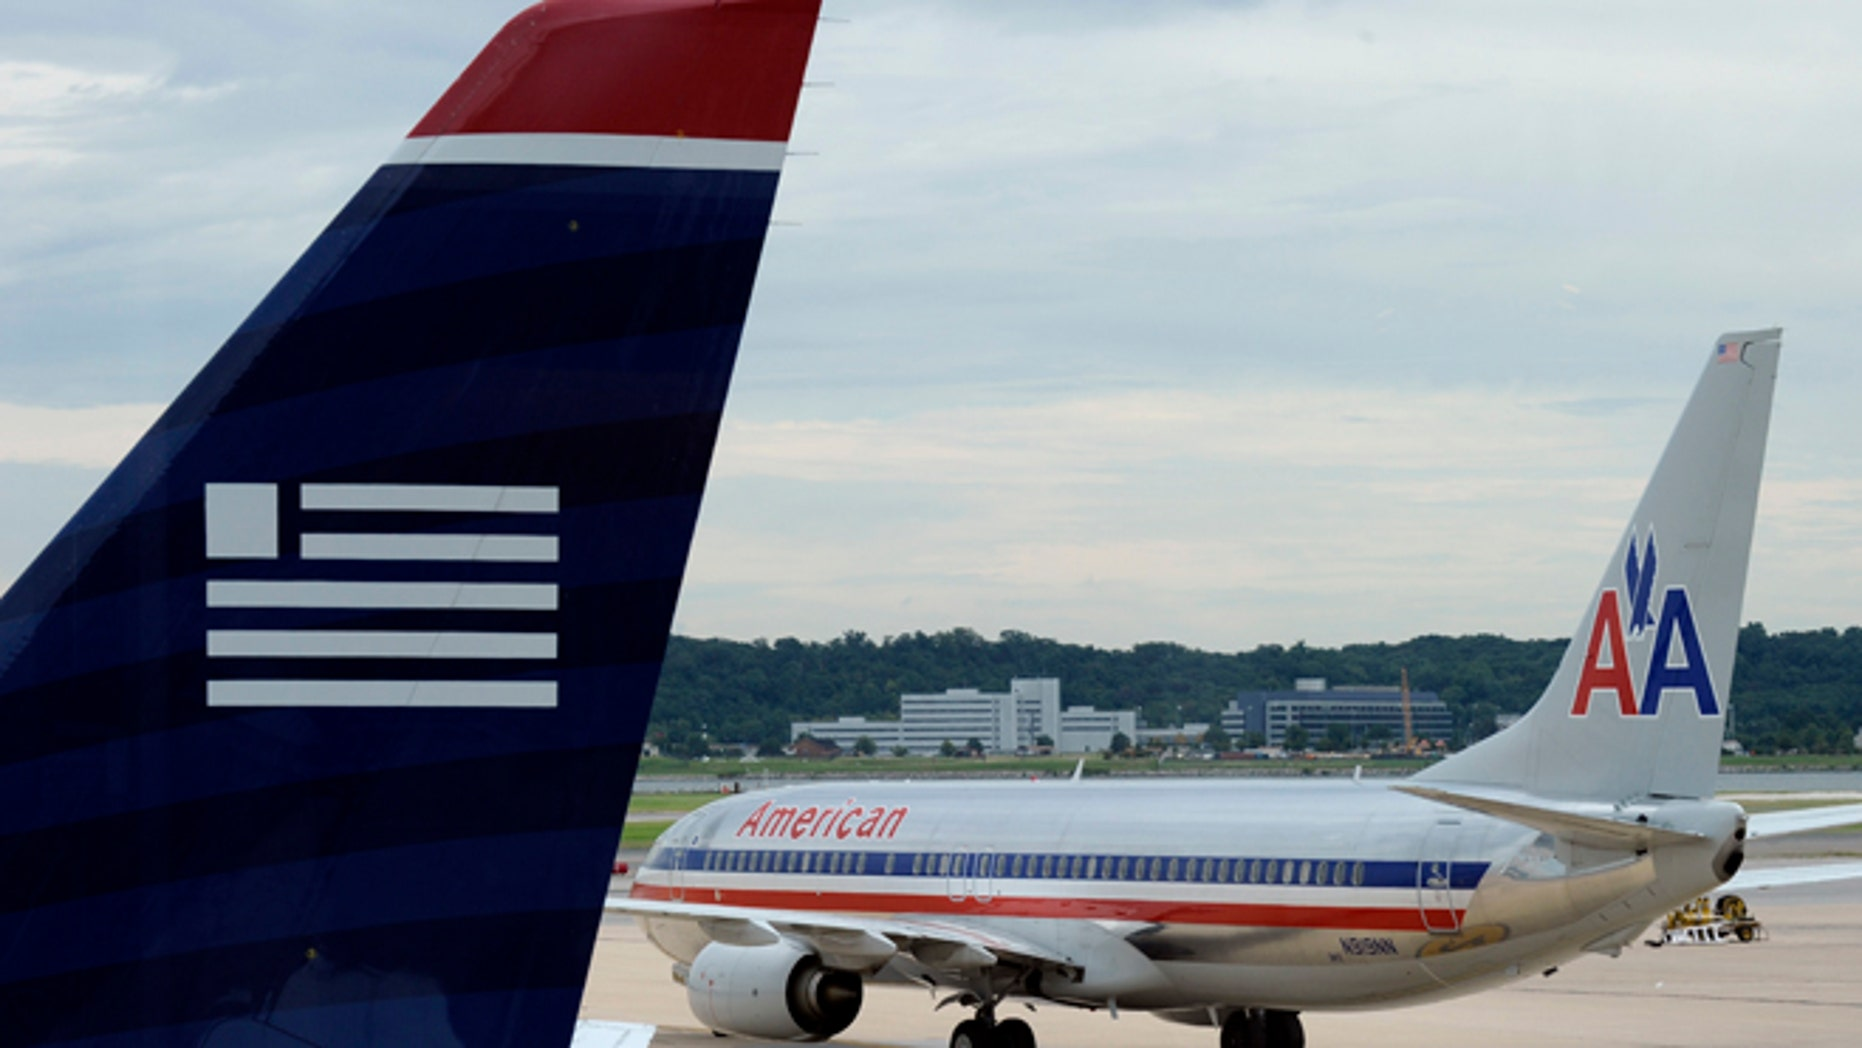 FILE: Aug. 13, 2013: An American Airlines and US Airways planes parked at Ronald Reagan National Airport in Arlington, Va.